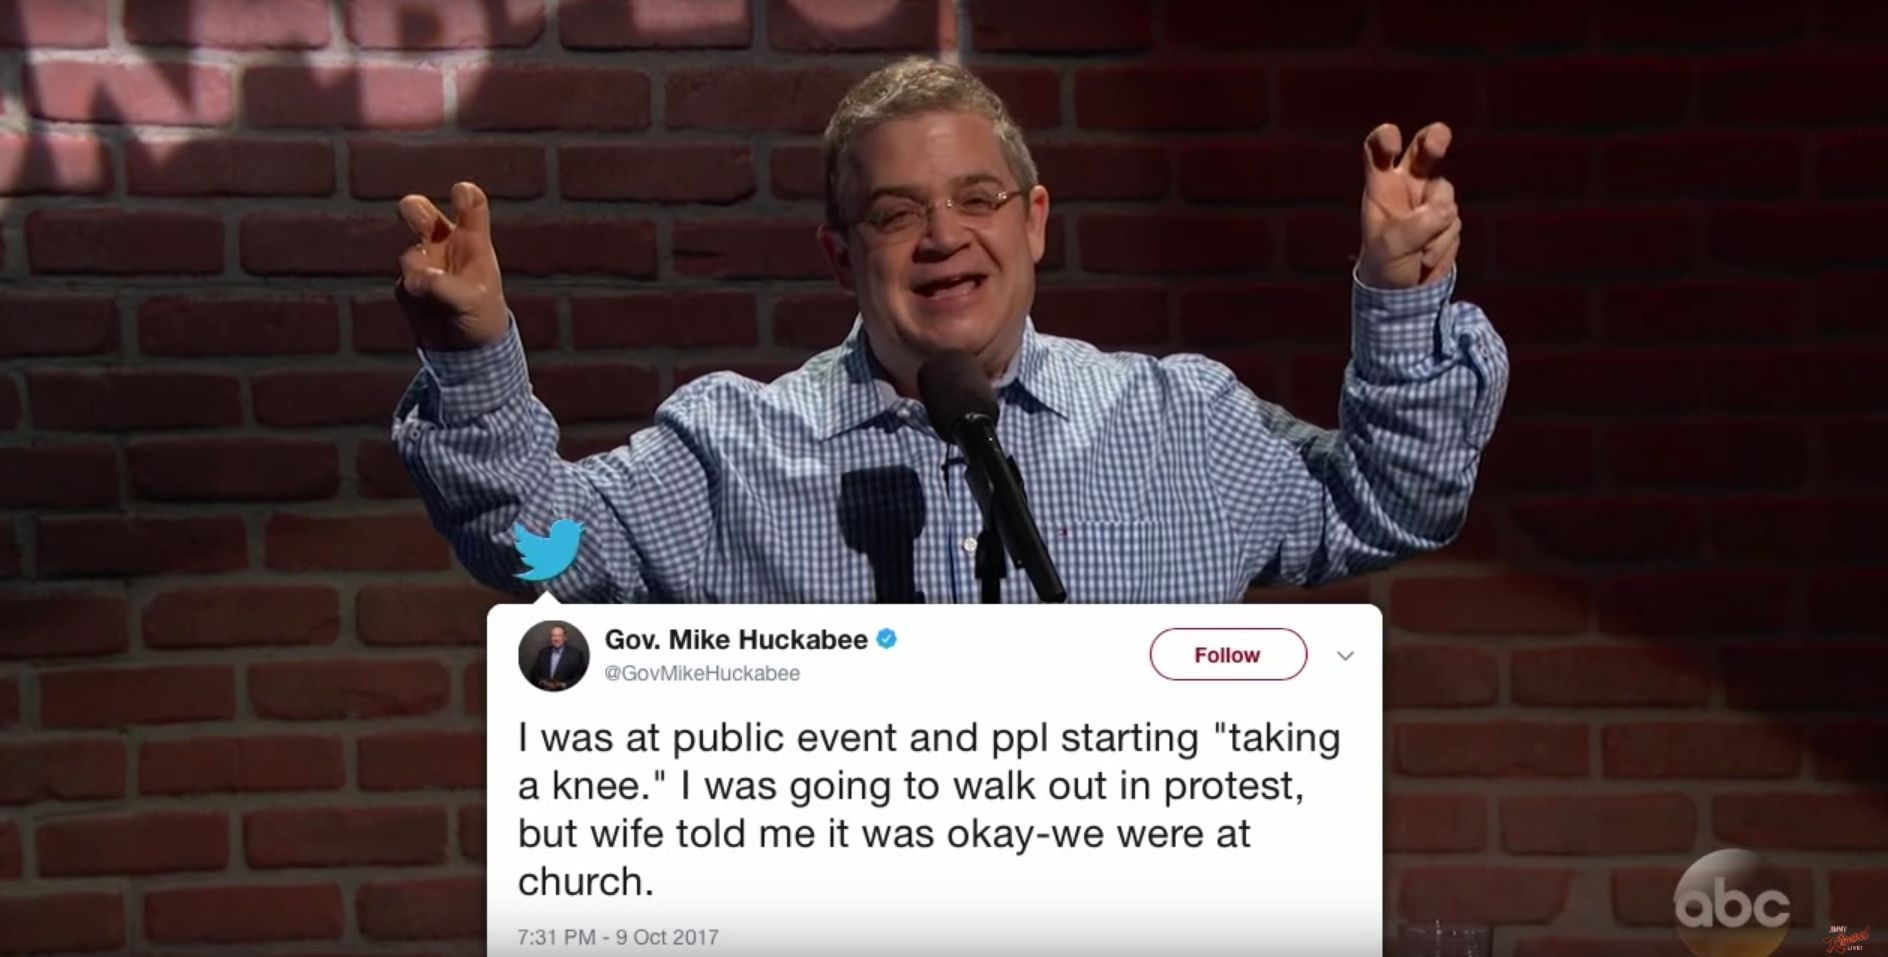 Patton Oswalt Tries Again To Perform Mike Huckabee's Awful Twitter Jokes